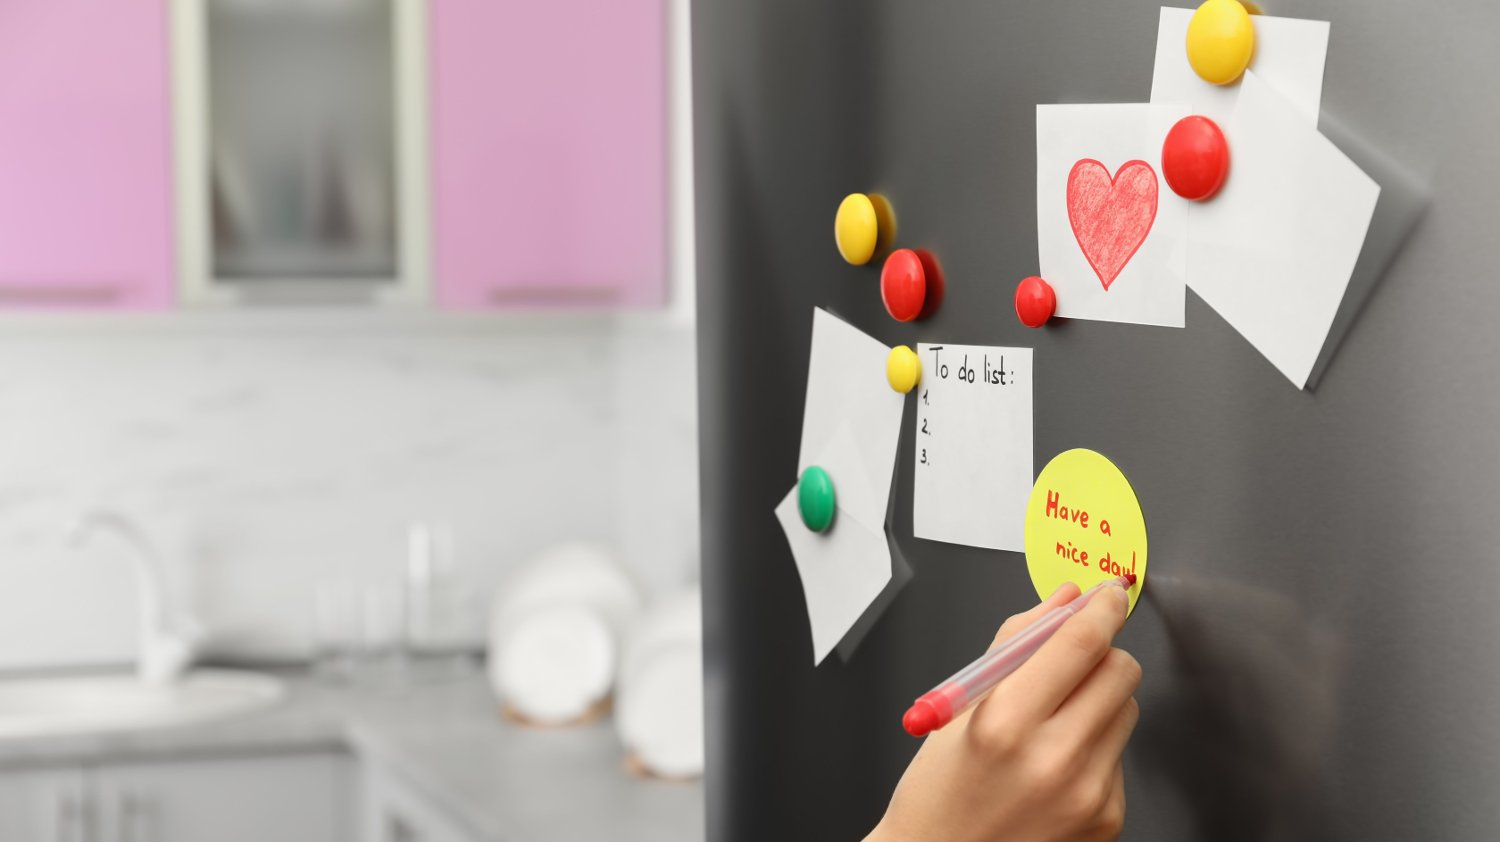 Woman writing message on note stuck to refrigerator door at home, closeup Woman writing message on note stuck to refrigerator door at home, closeup